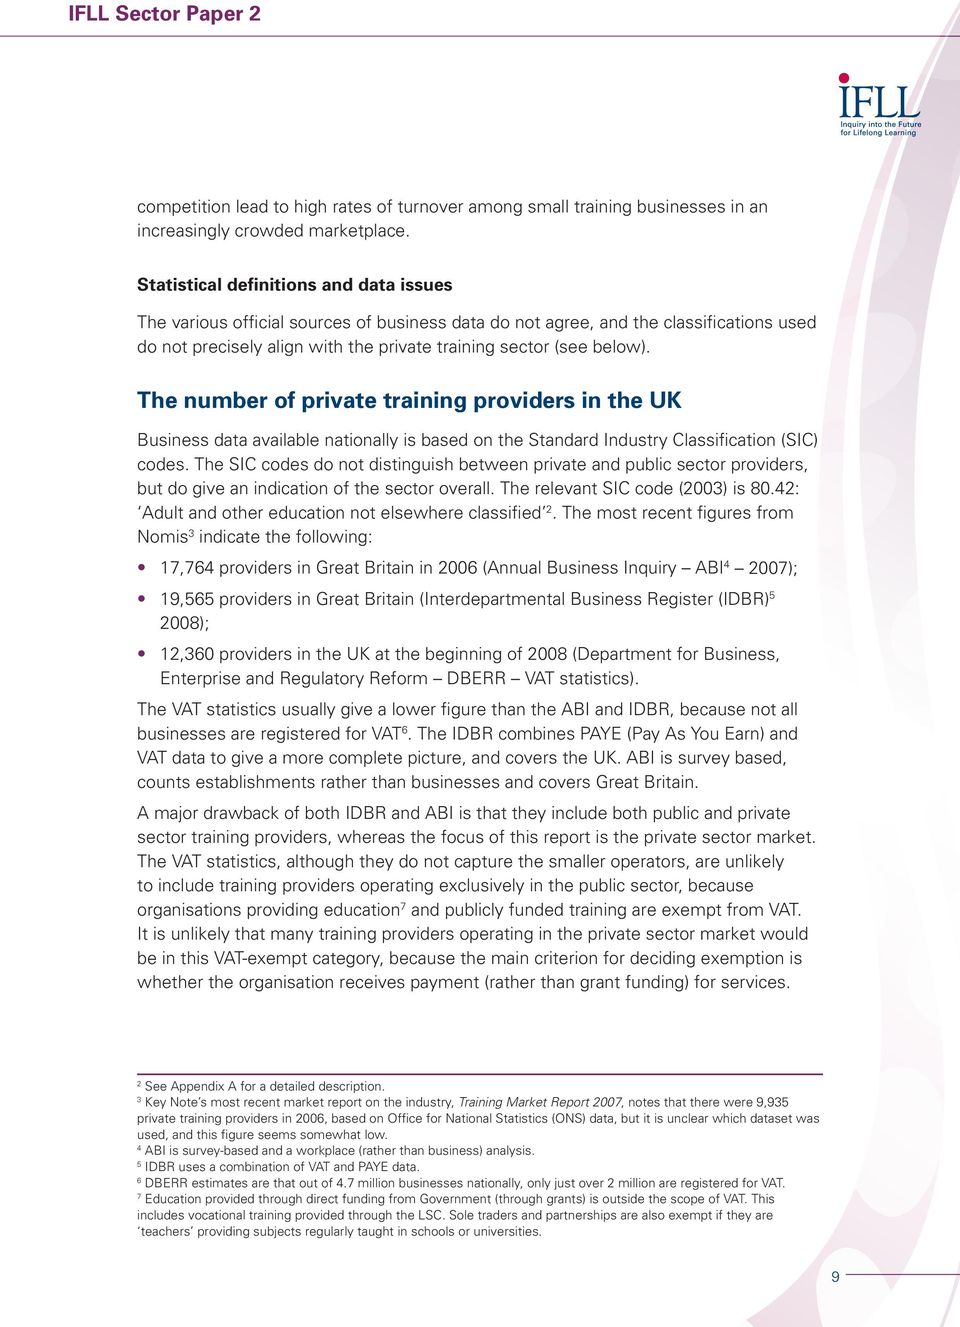 The number of private training providers in the UK Business data available nationally is based on the Standard Industry Classification (SIC) codes.